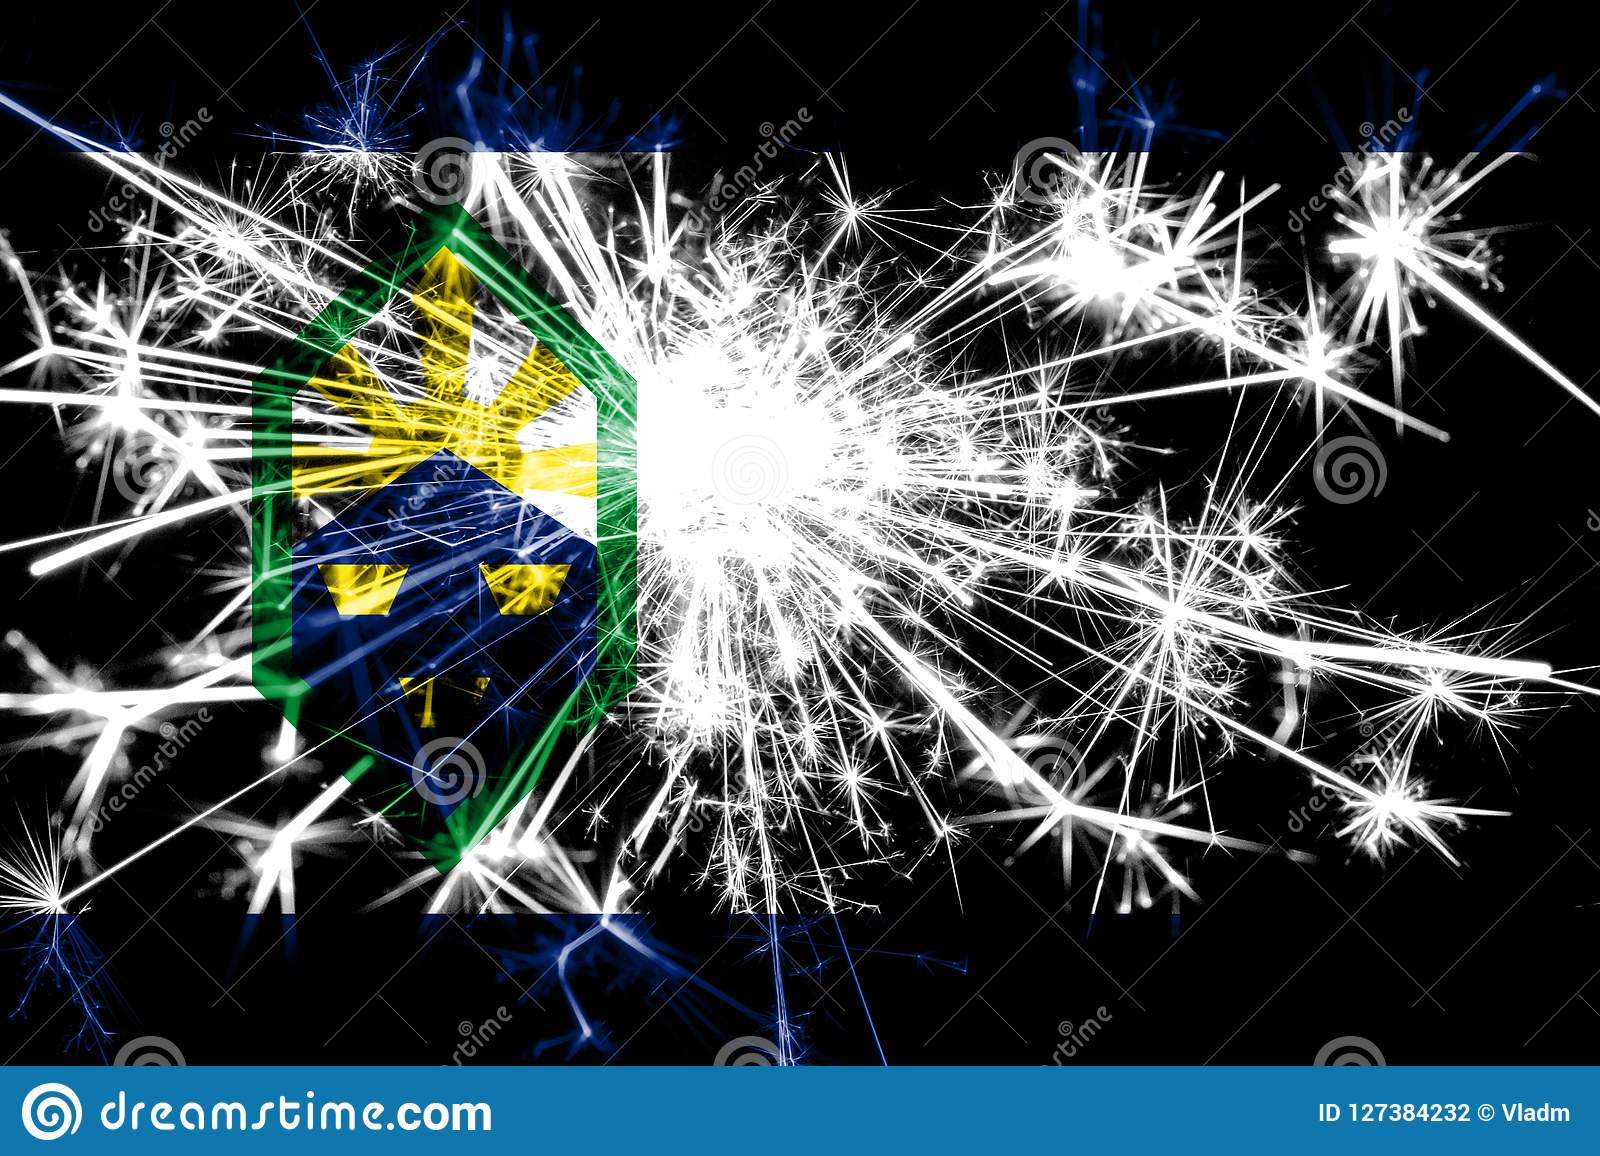 Colorado Springs, Colorado fireworks sparkling flag. New Year 2019 and Christmas party concept.